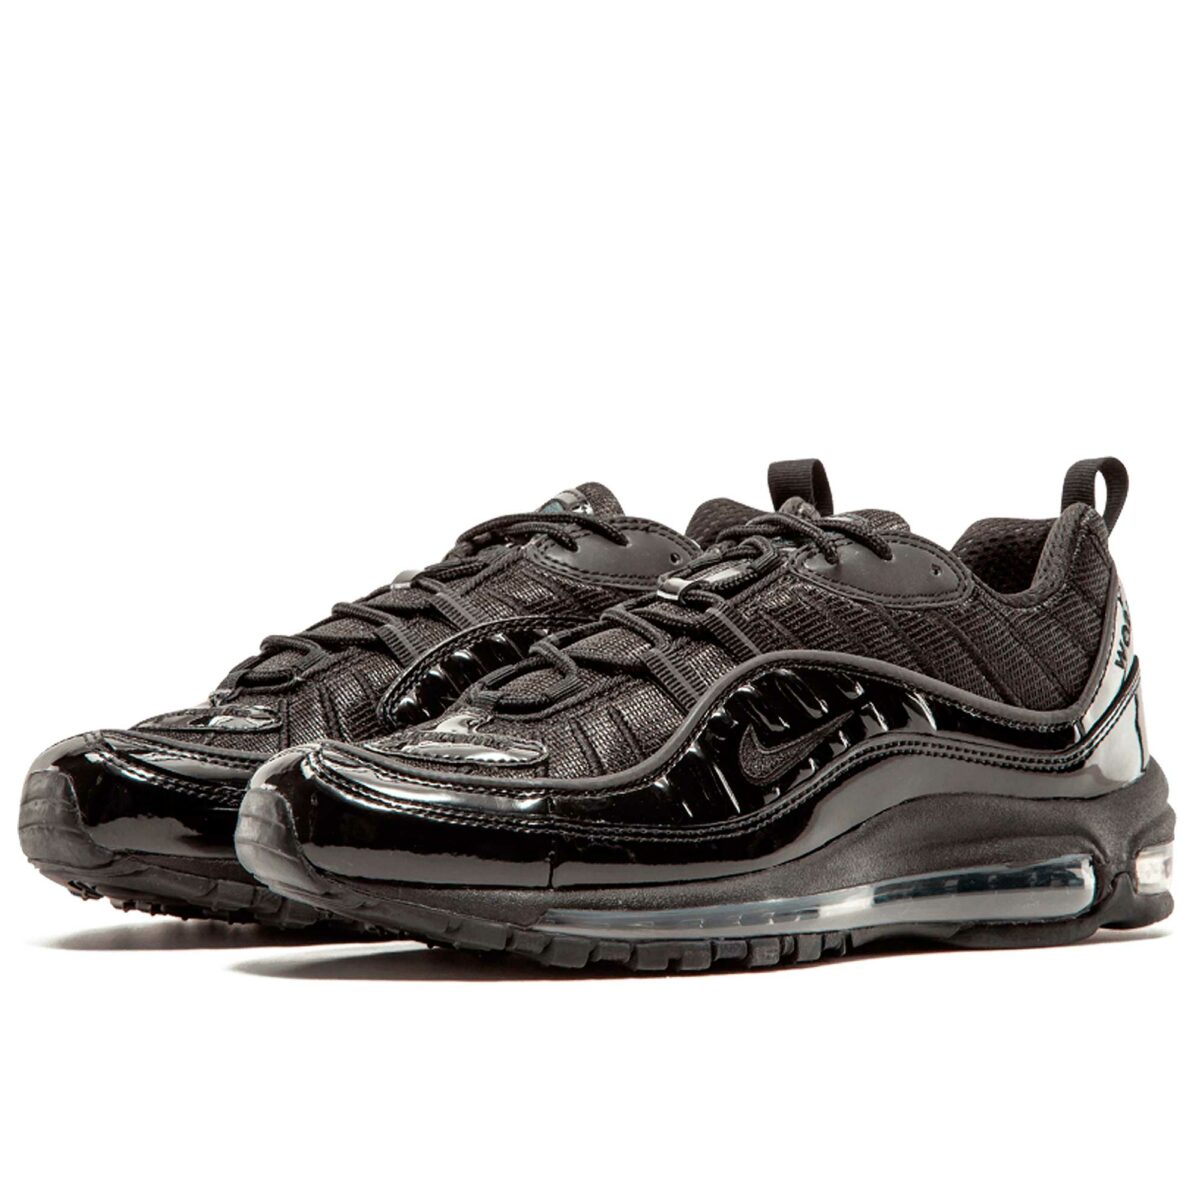 nike air max 98 supreme all black 844694_001 купить